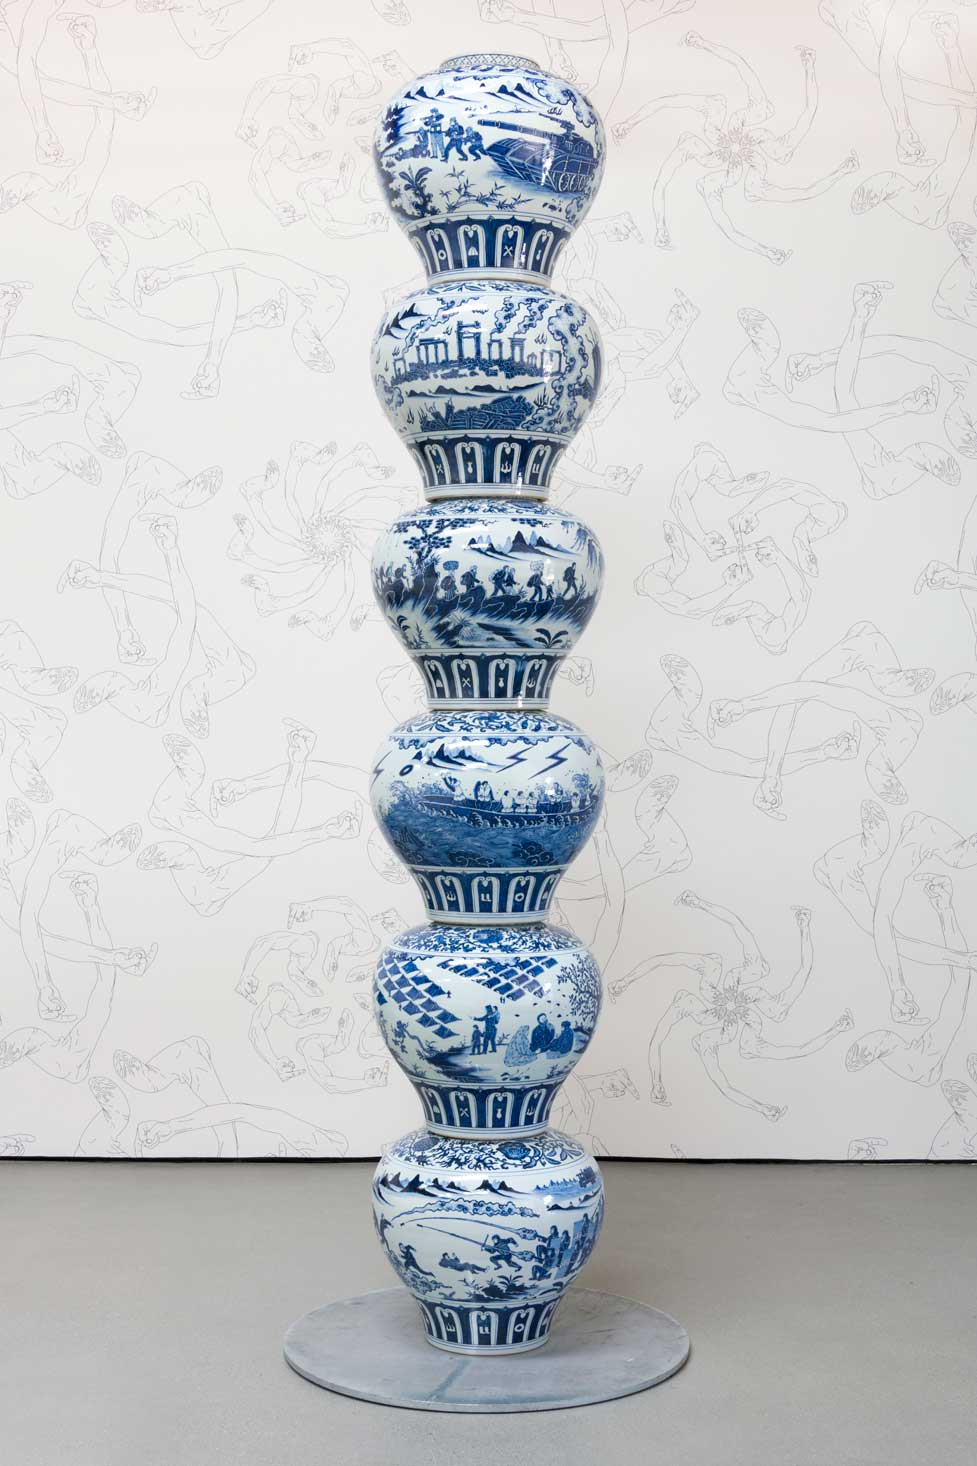 Vases with Refugee Motif as a Pillar  (2017) Ai Weiwei Installation view Photo by Jeff Mclane